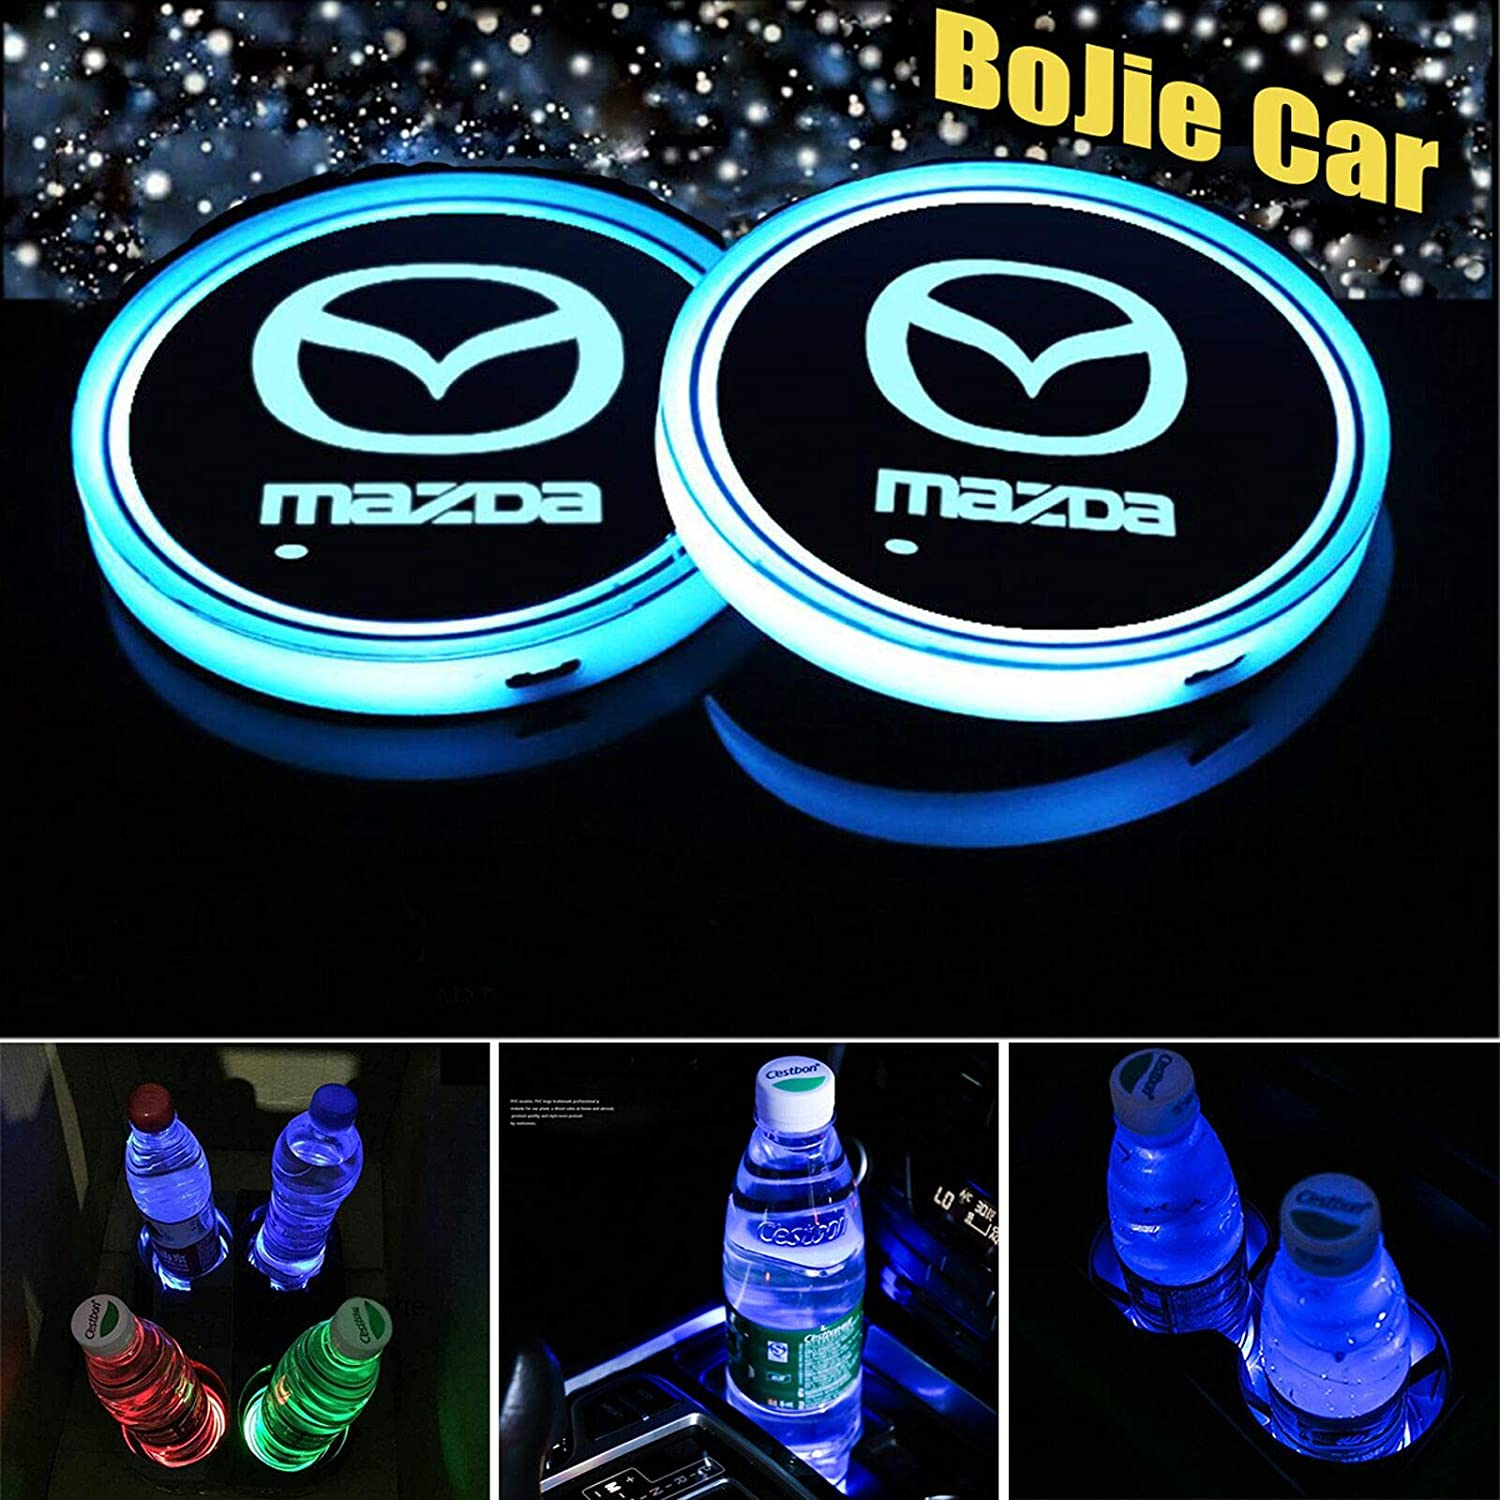 2pcs LED Car Logo Cup Holder Lights for Mazda, 7 Colors Changing USB Charging Mat Luminescent Cup Pad, LED Interior Atmosphere Lamp Decoration Light. (Mazda)